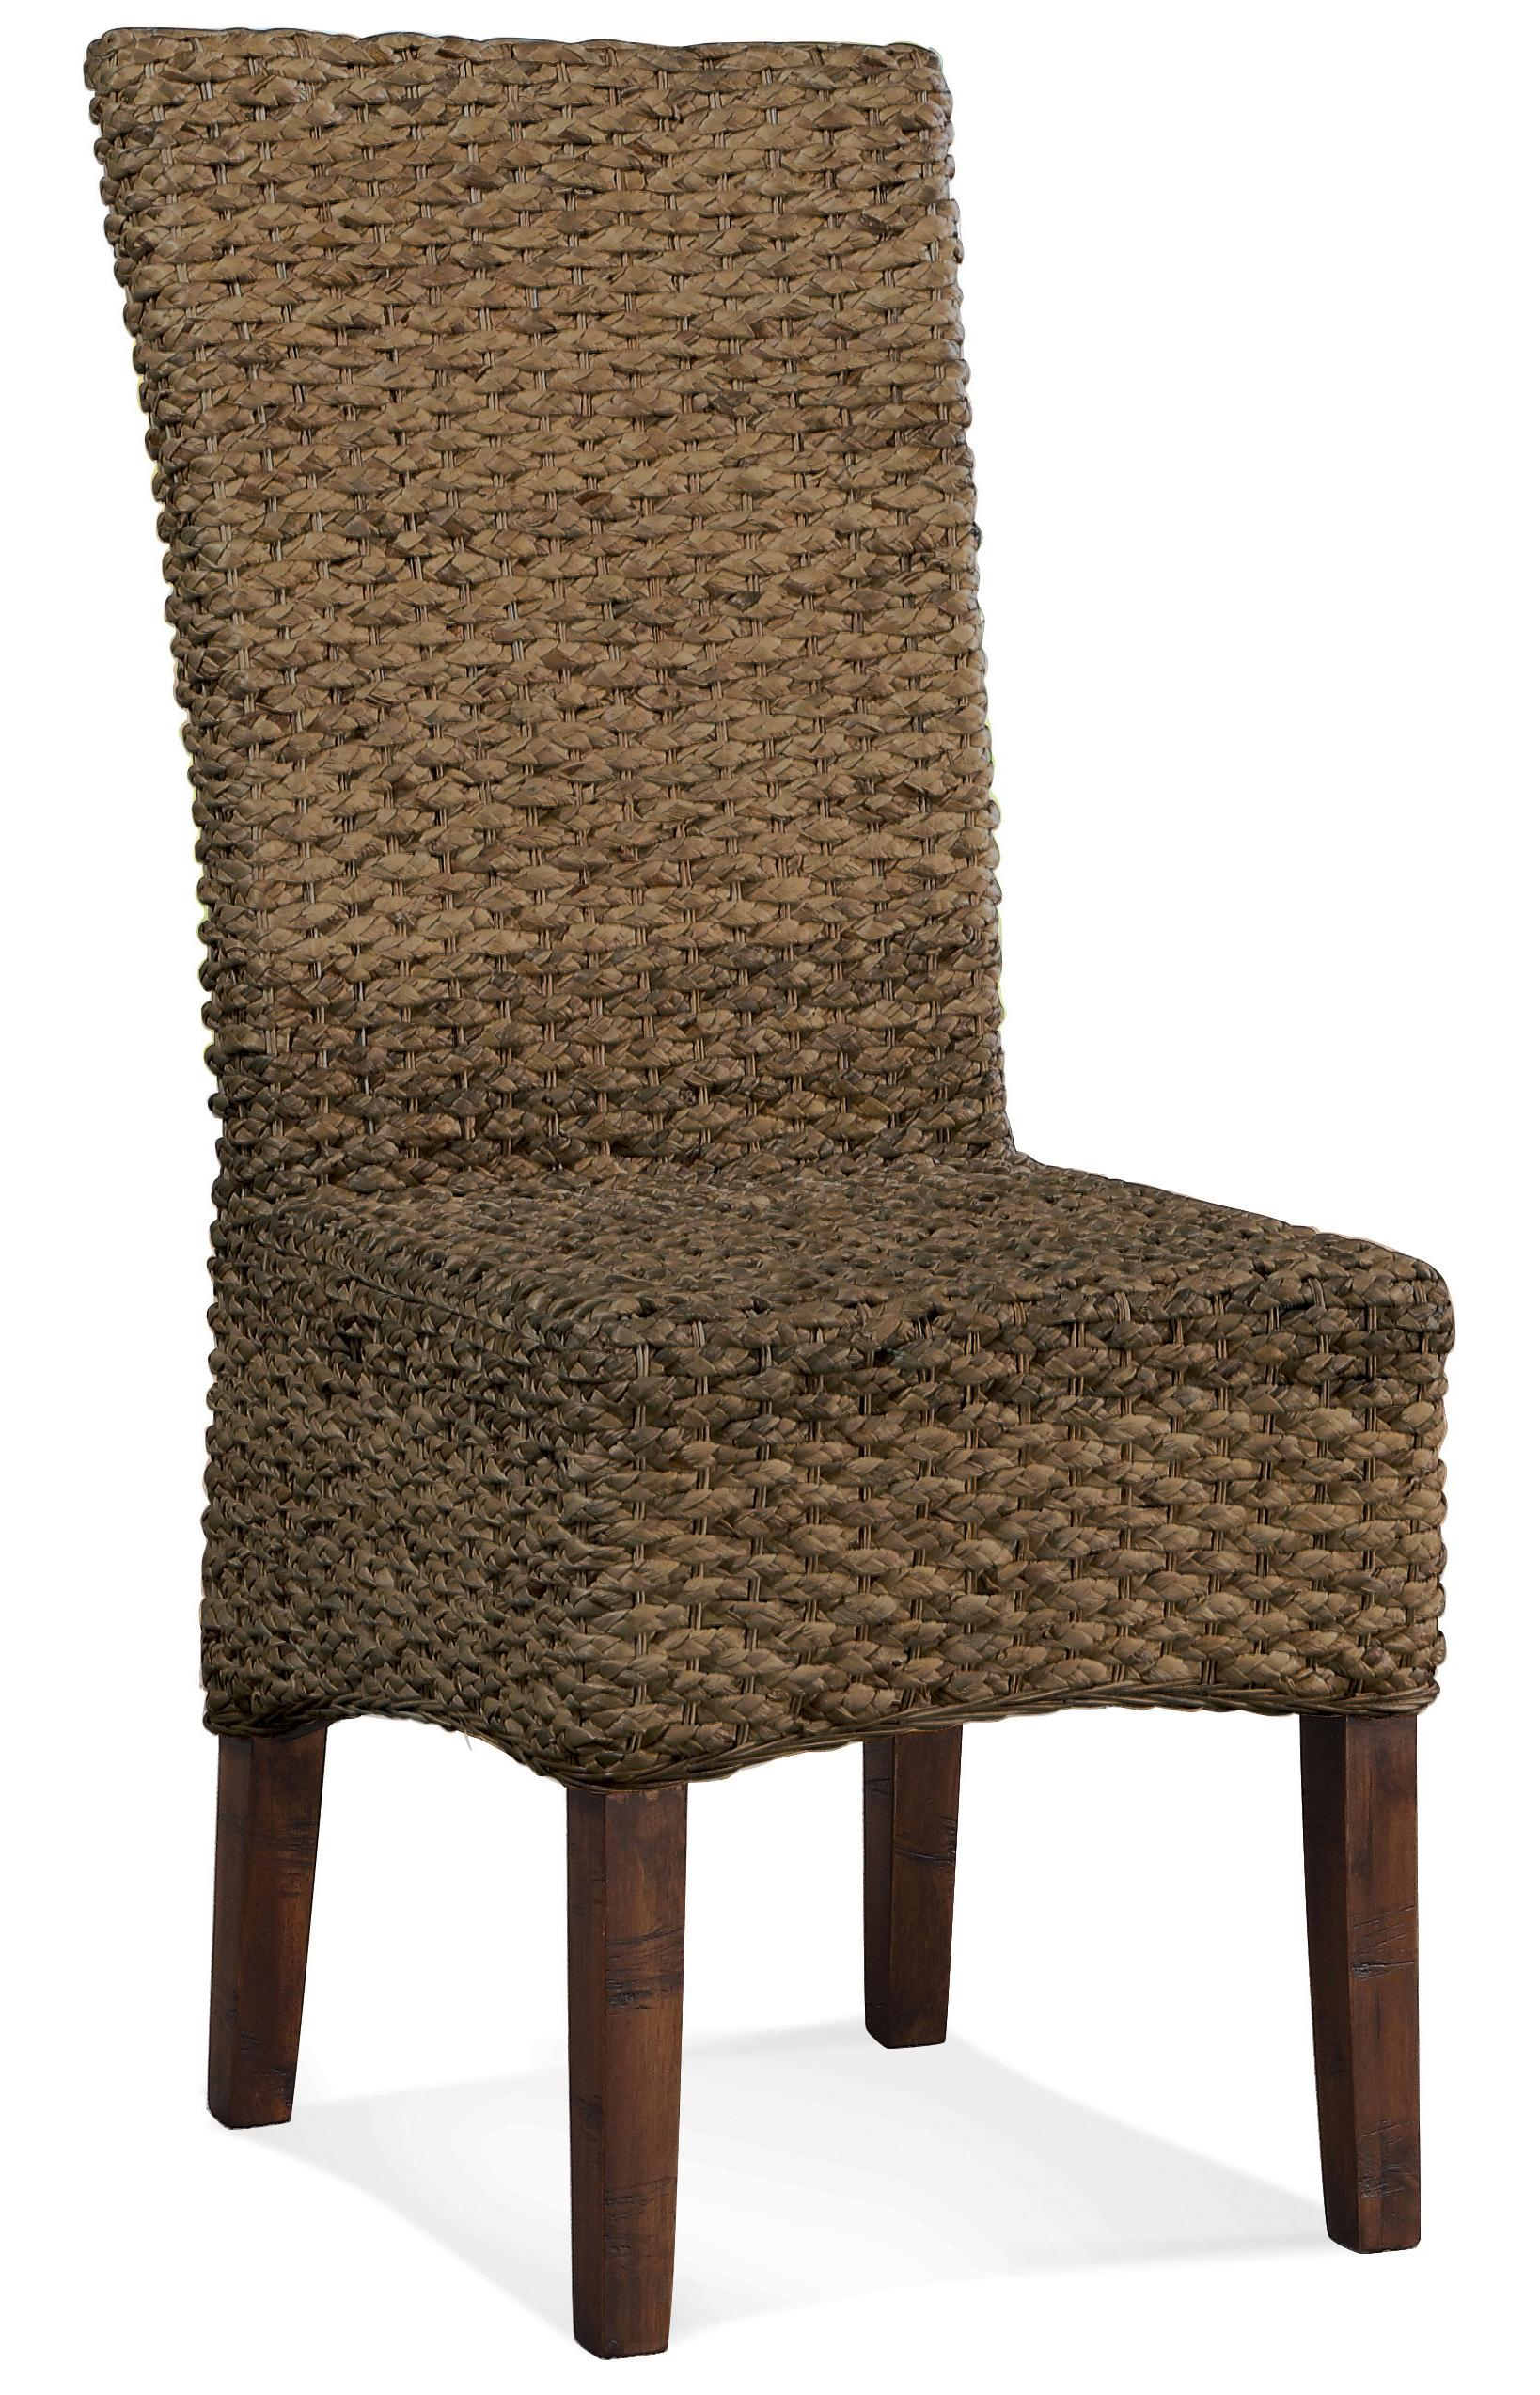 Mix-N-Match Chairs Woven Leaf Side Chair by Riverside Furniture at Jacksonville Furniture Mart